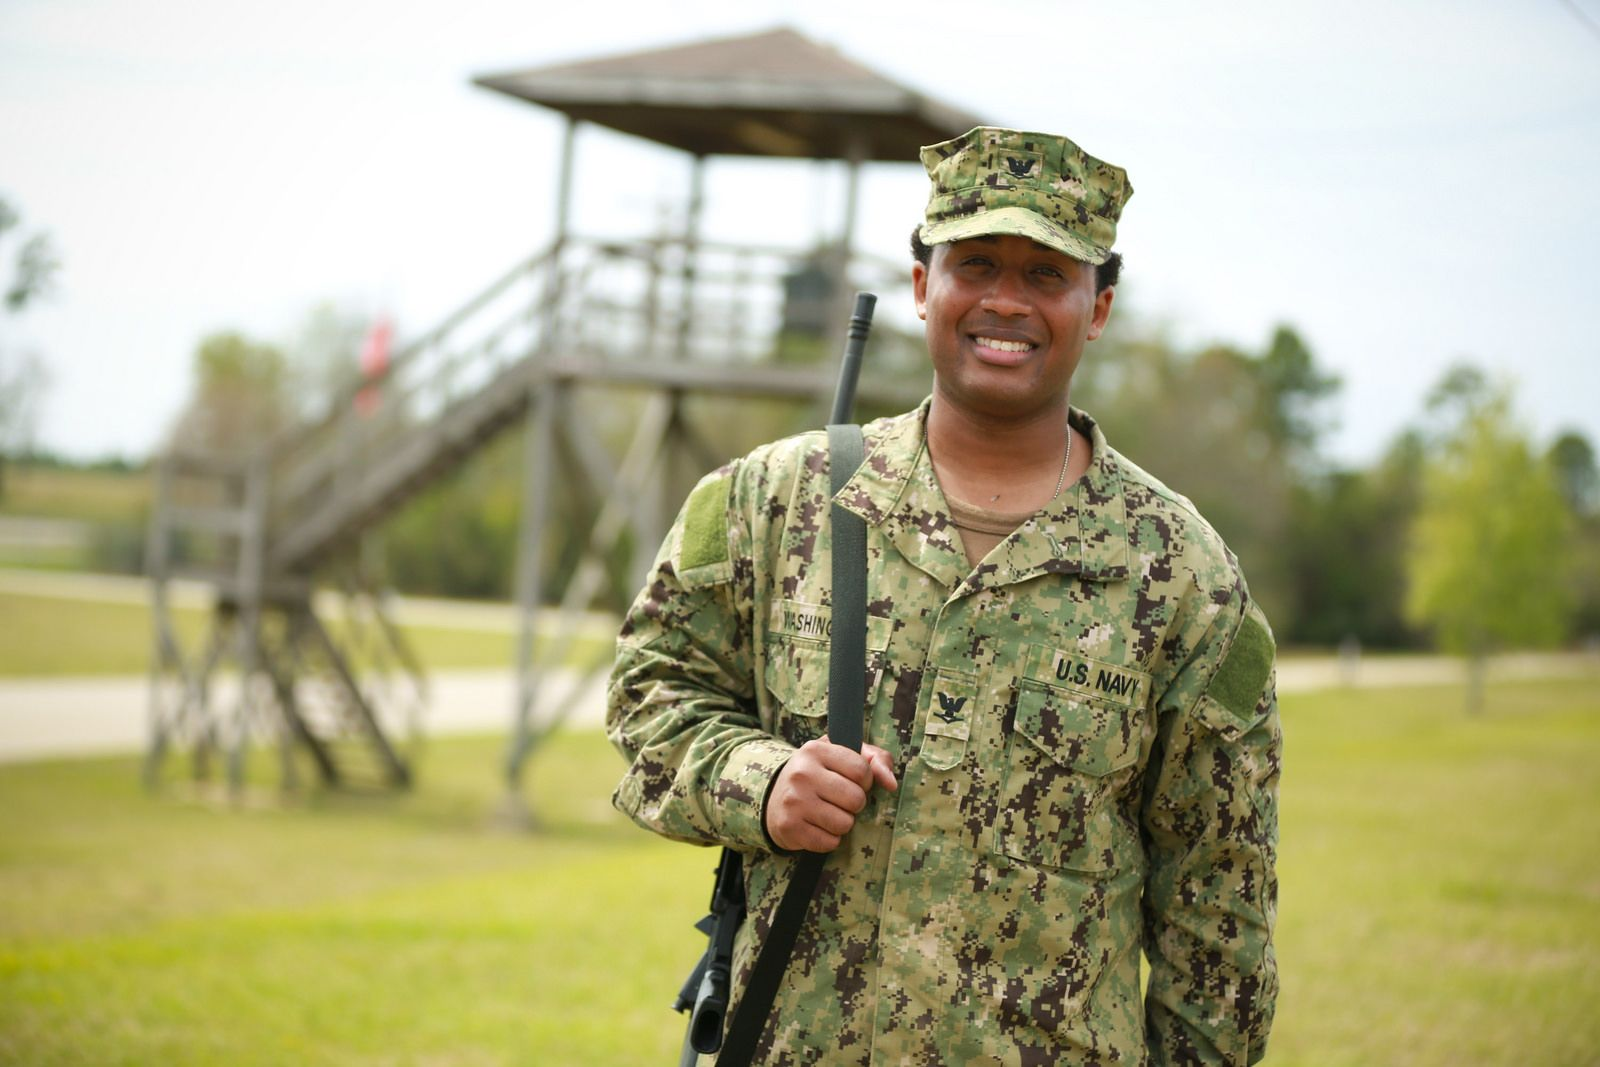 Petty Officer 3rd Class Bernard Washington, a yeoman and 2007 Westlake High School graduate from Waldorf, Md., is serving in the U.S. Navy as part of Naval Mobile Construction Battalion 74 specializing in advance base construction, battle damage repair, contingency engineering, humanitarian assistance and disaster recovery support to fleet and unified commanders. (U.S. Navy photo by Senior Chief Mass Communication Specialist Gary Ward/ Released)